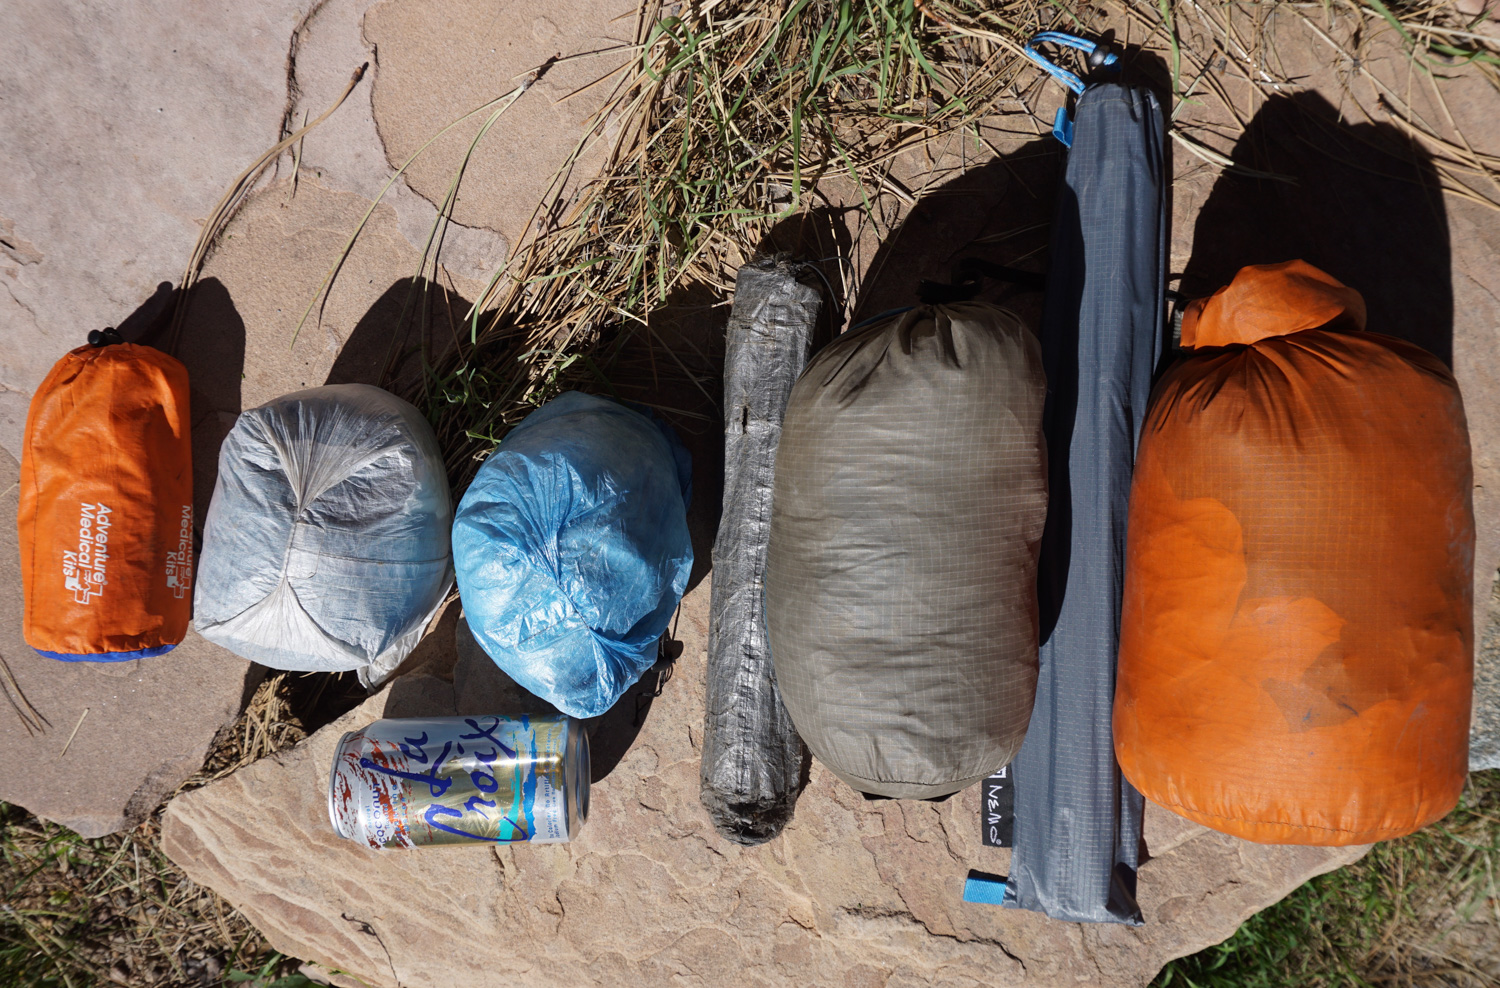 From left to right, SOL Emergency Bivy, Montbell U.L. Sleeping Bag Cover, ZPacks Hexamid Pocket Tarp, Black Diamond Beta Light tent with ZPacks poles, and Nemo Blaze 2P tent and poles.